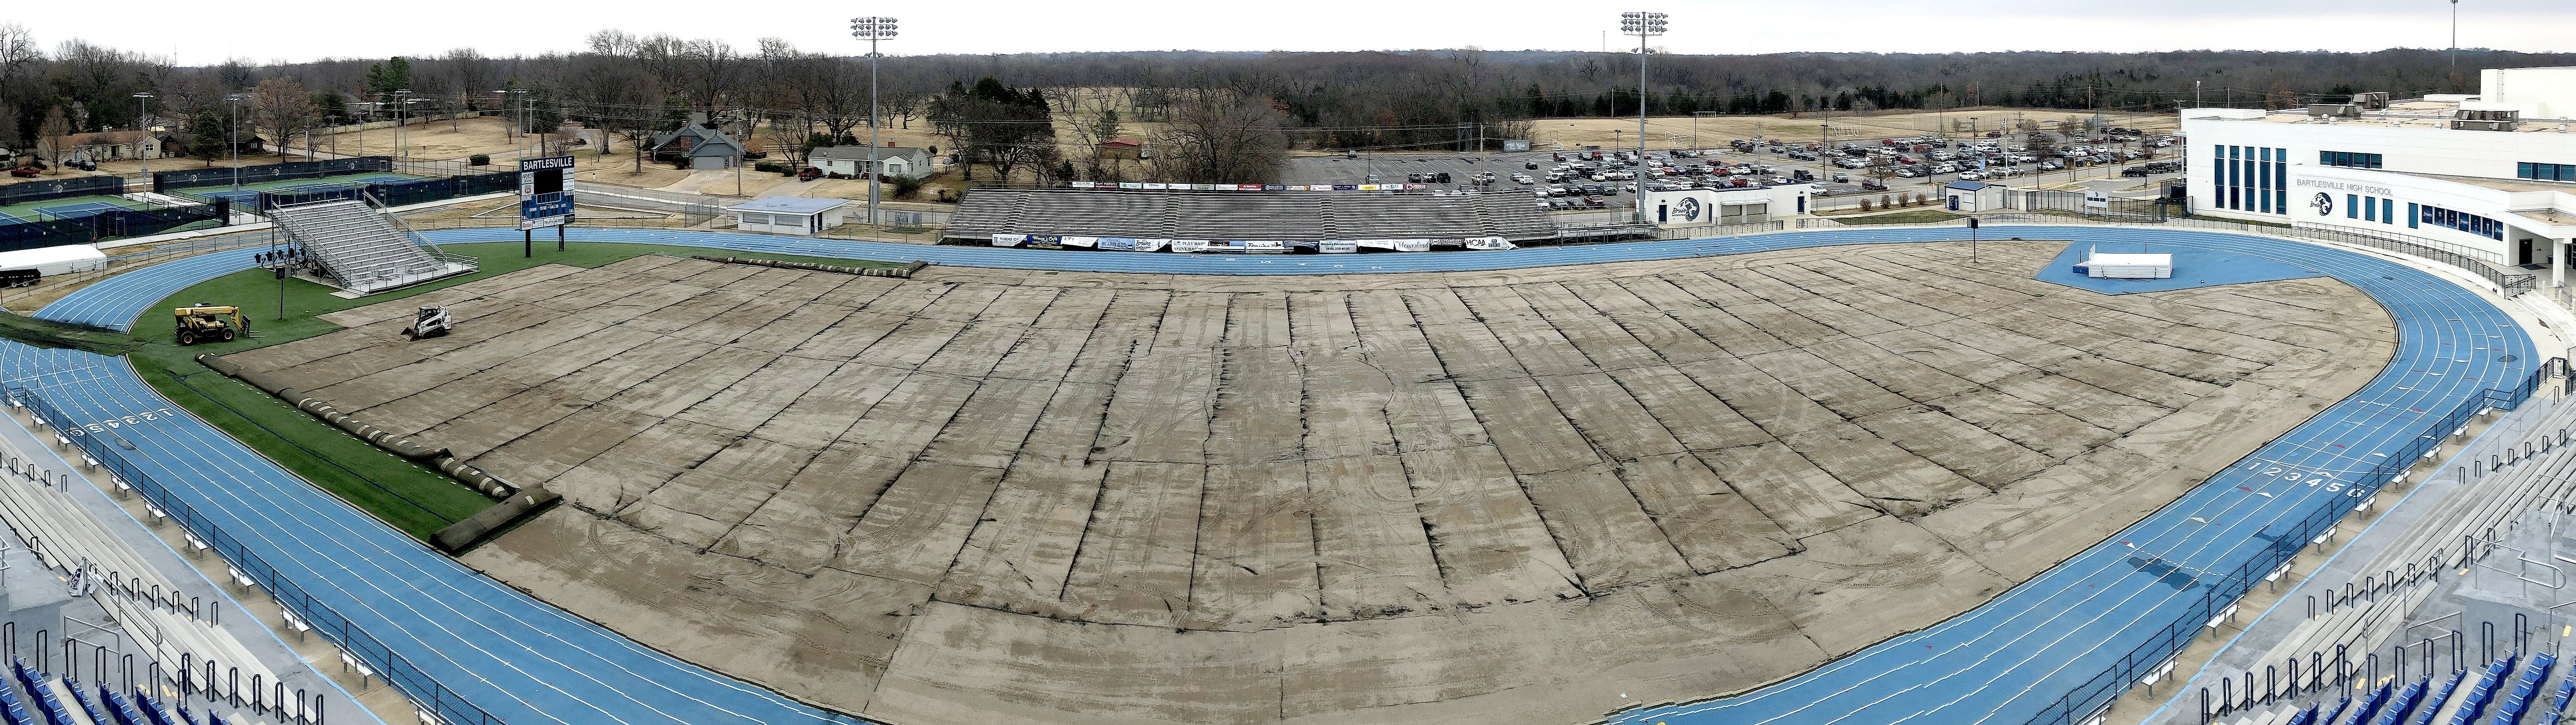 Panorama of Lyon Field without turf